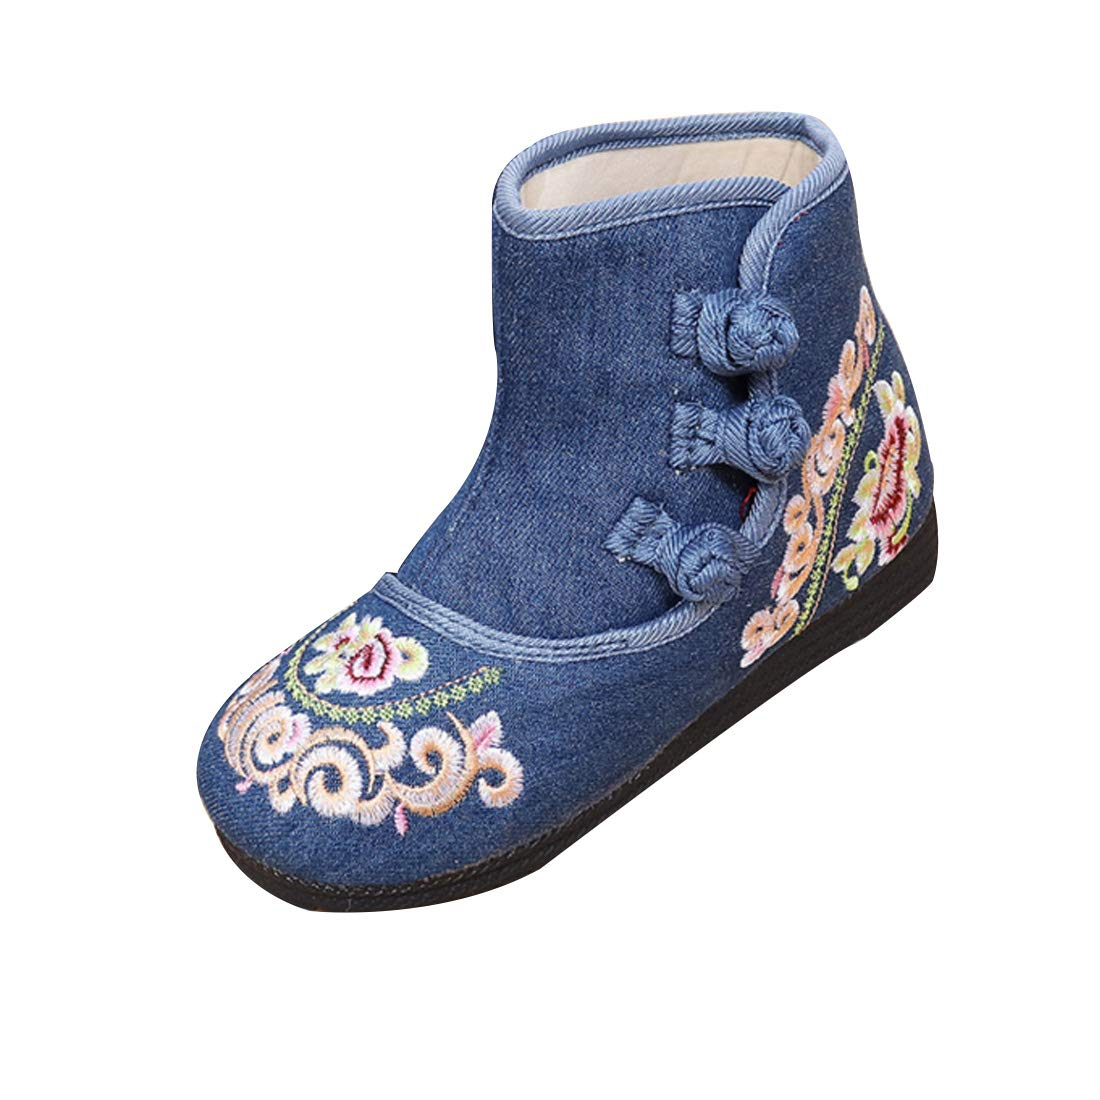 Huicai Girls Embroidered Boot Flat Buckle Strap Pattern Shoes Slip On Booties